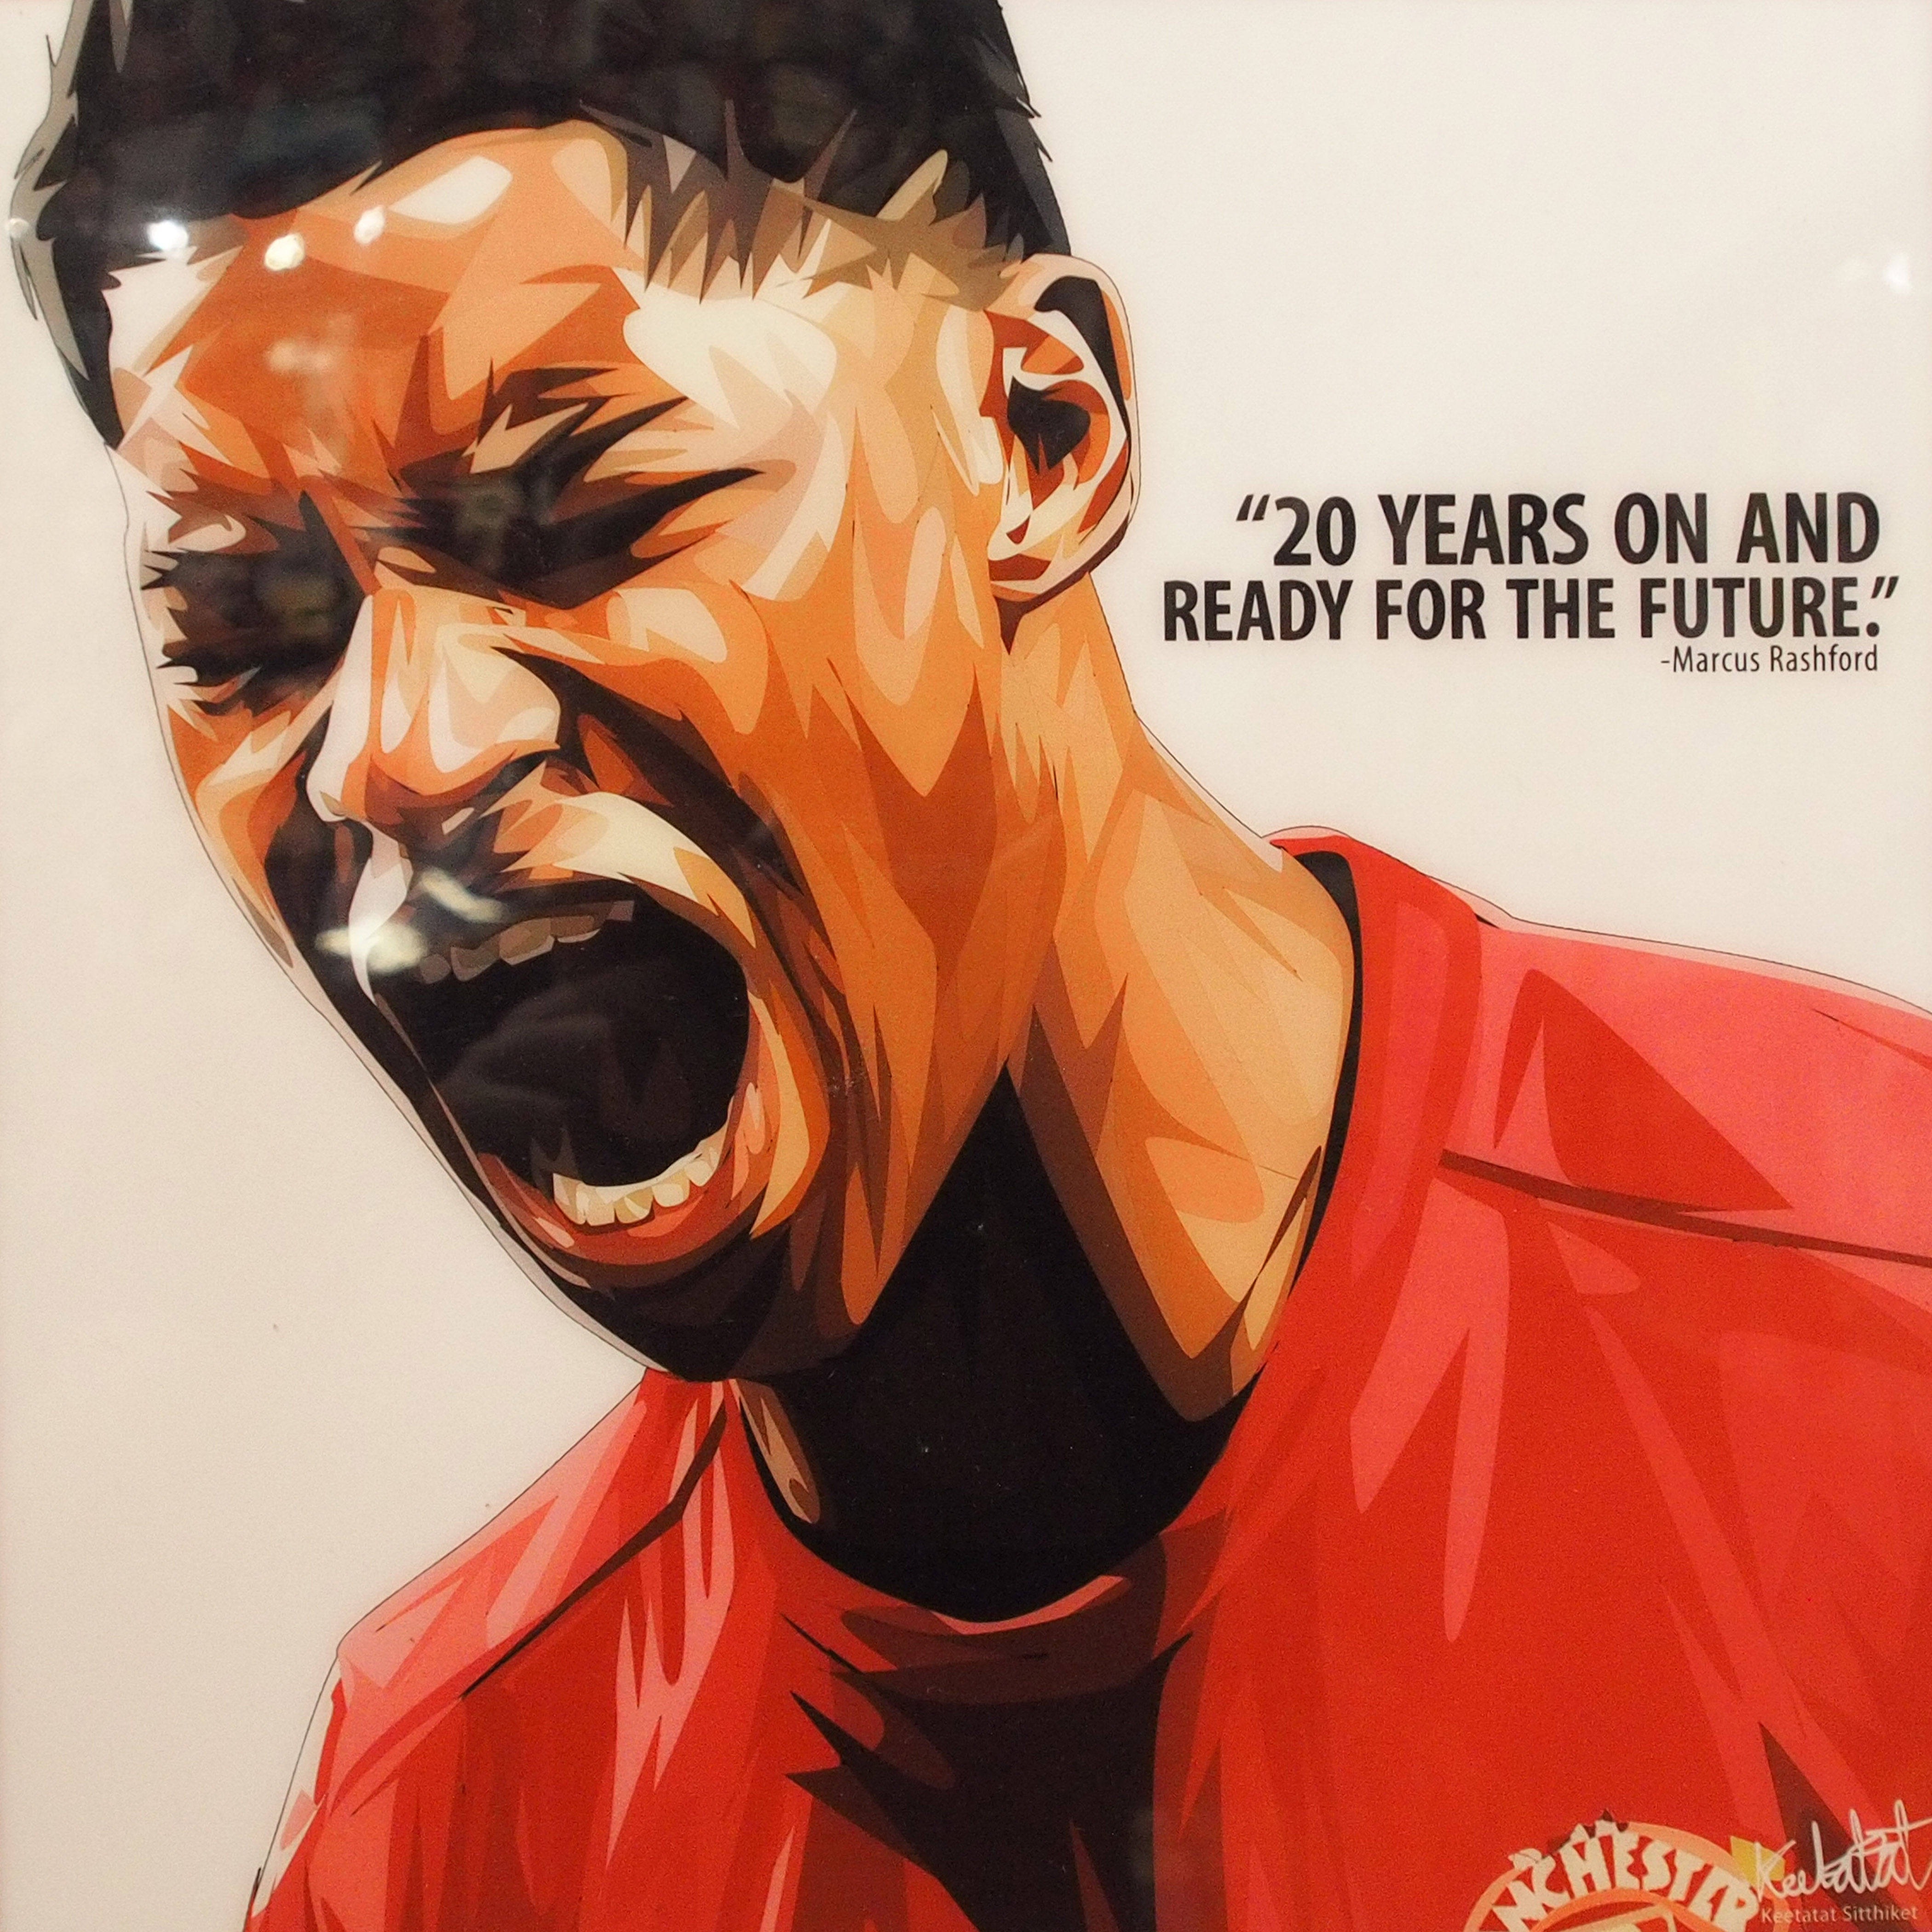 Marcus Rashford Poster 20 Years On And Ready Infamous Inspiration